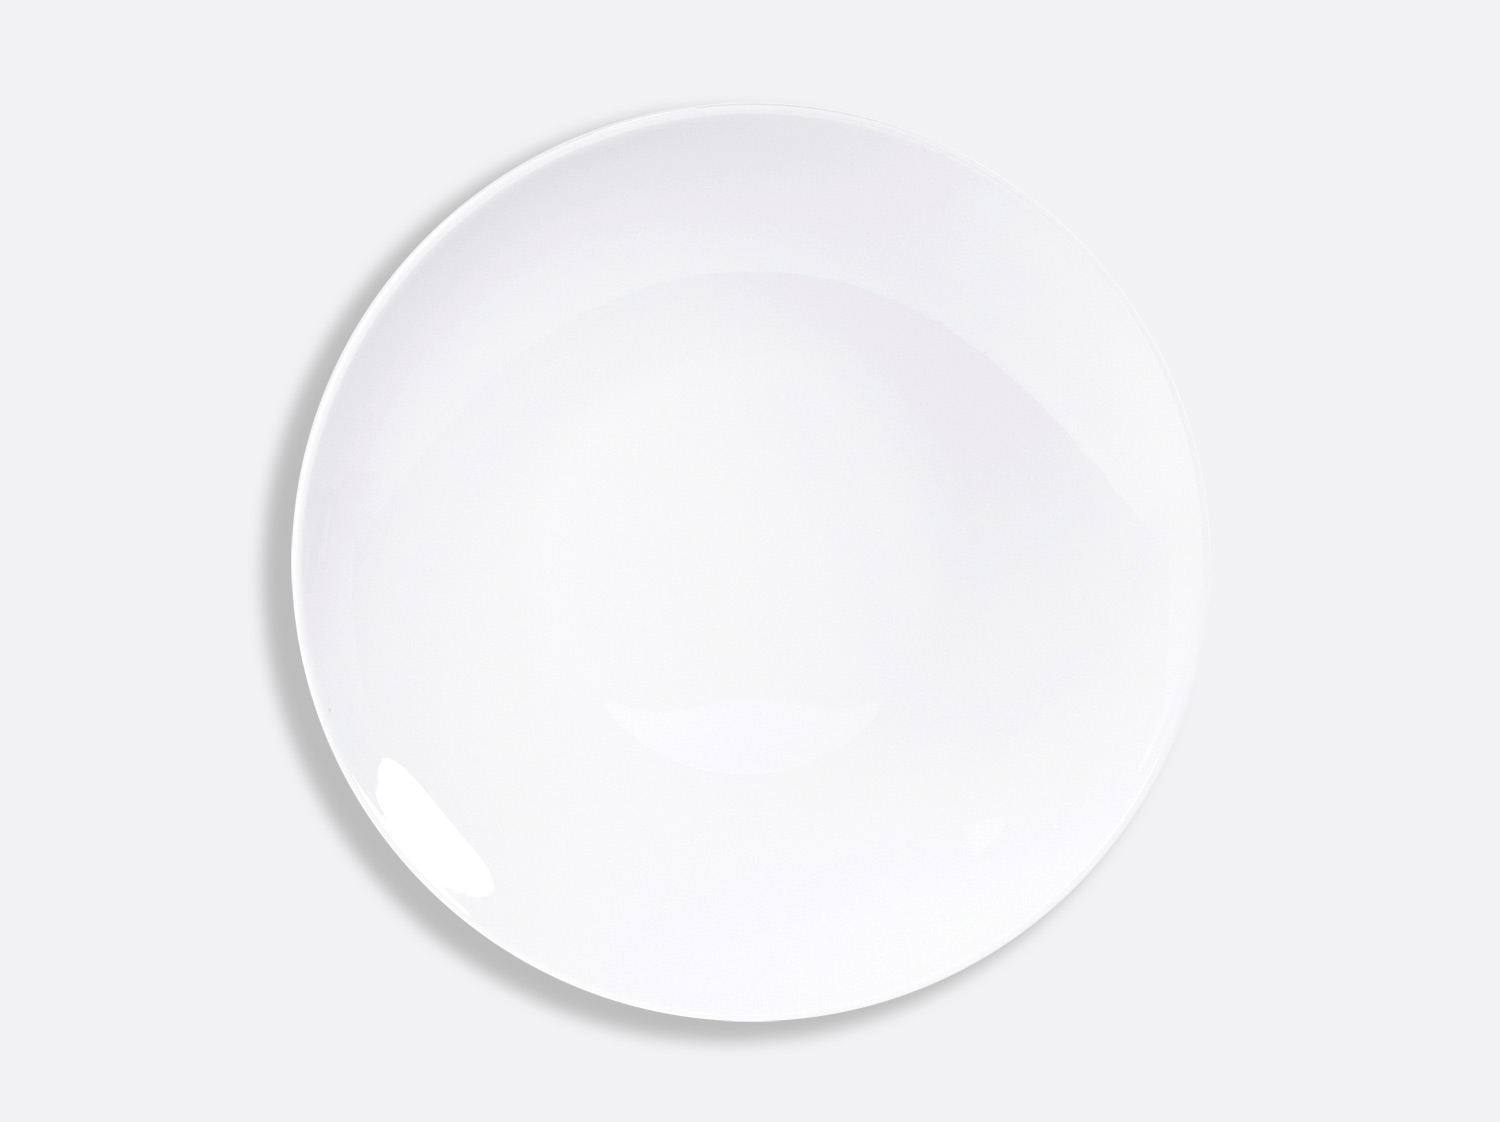 China Zarzuela platter 29 cm of the collection Ji qing blanc | Bernardaud